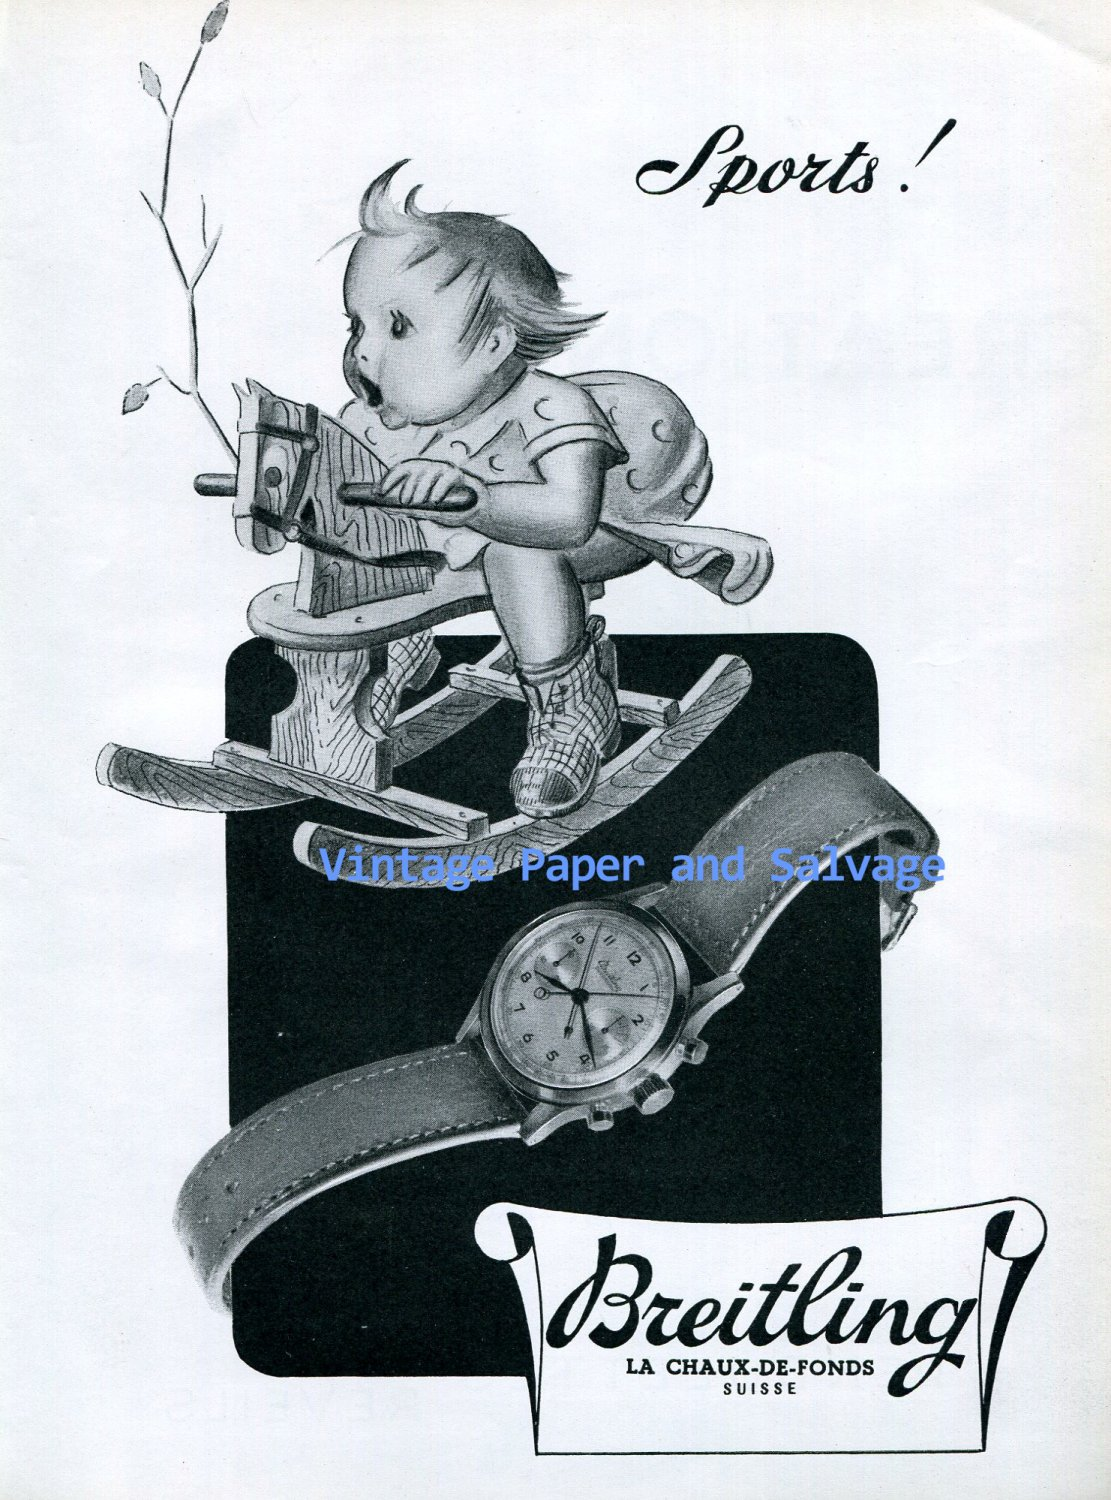 1945 Breitling Watch Company Breitling Sports Advert Vintage 1940s Swiss Ad Suisse Switzerland